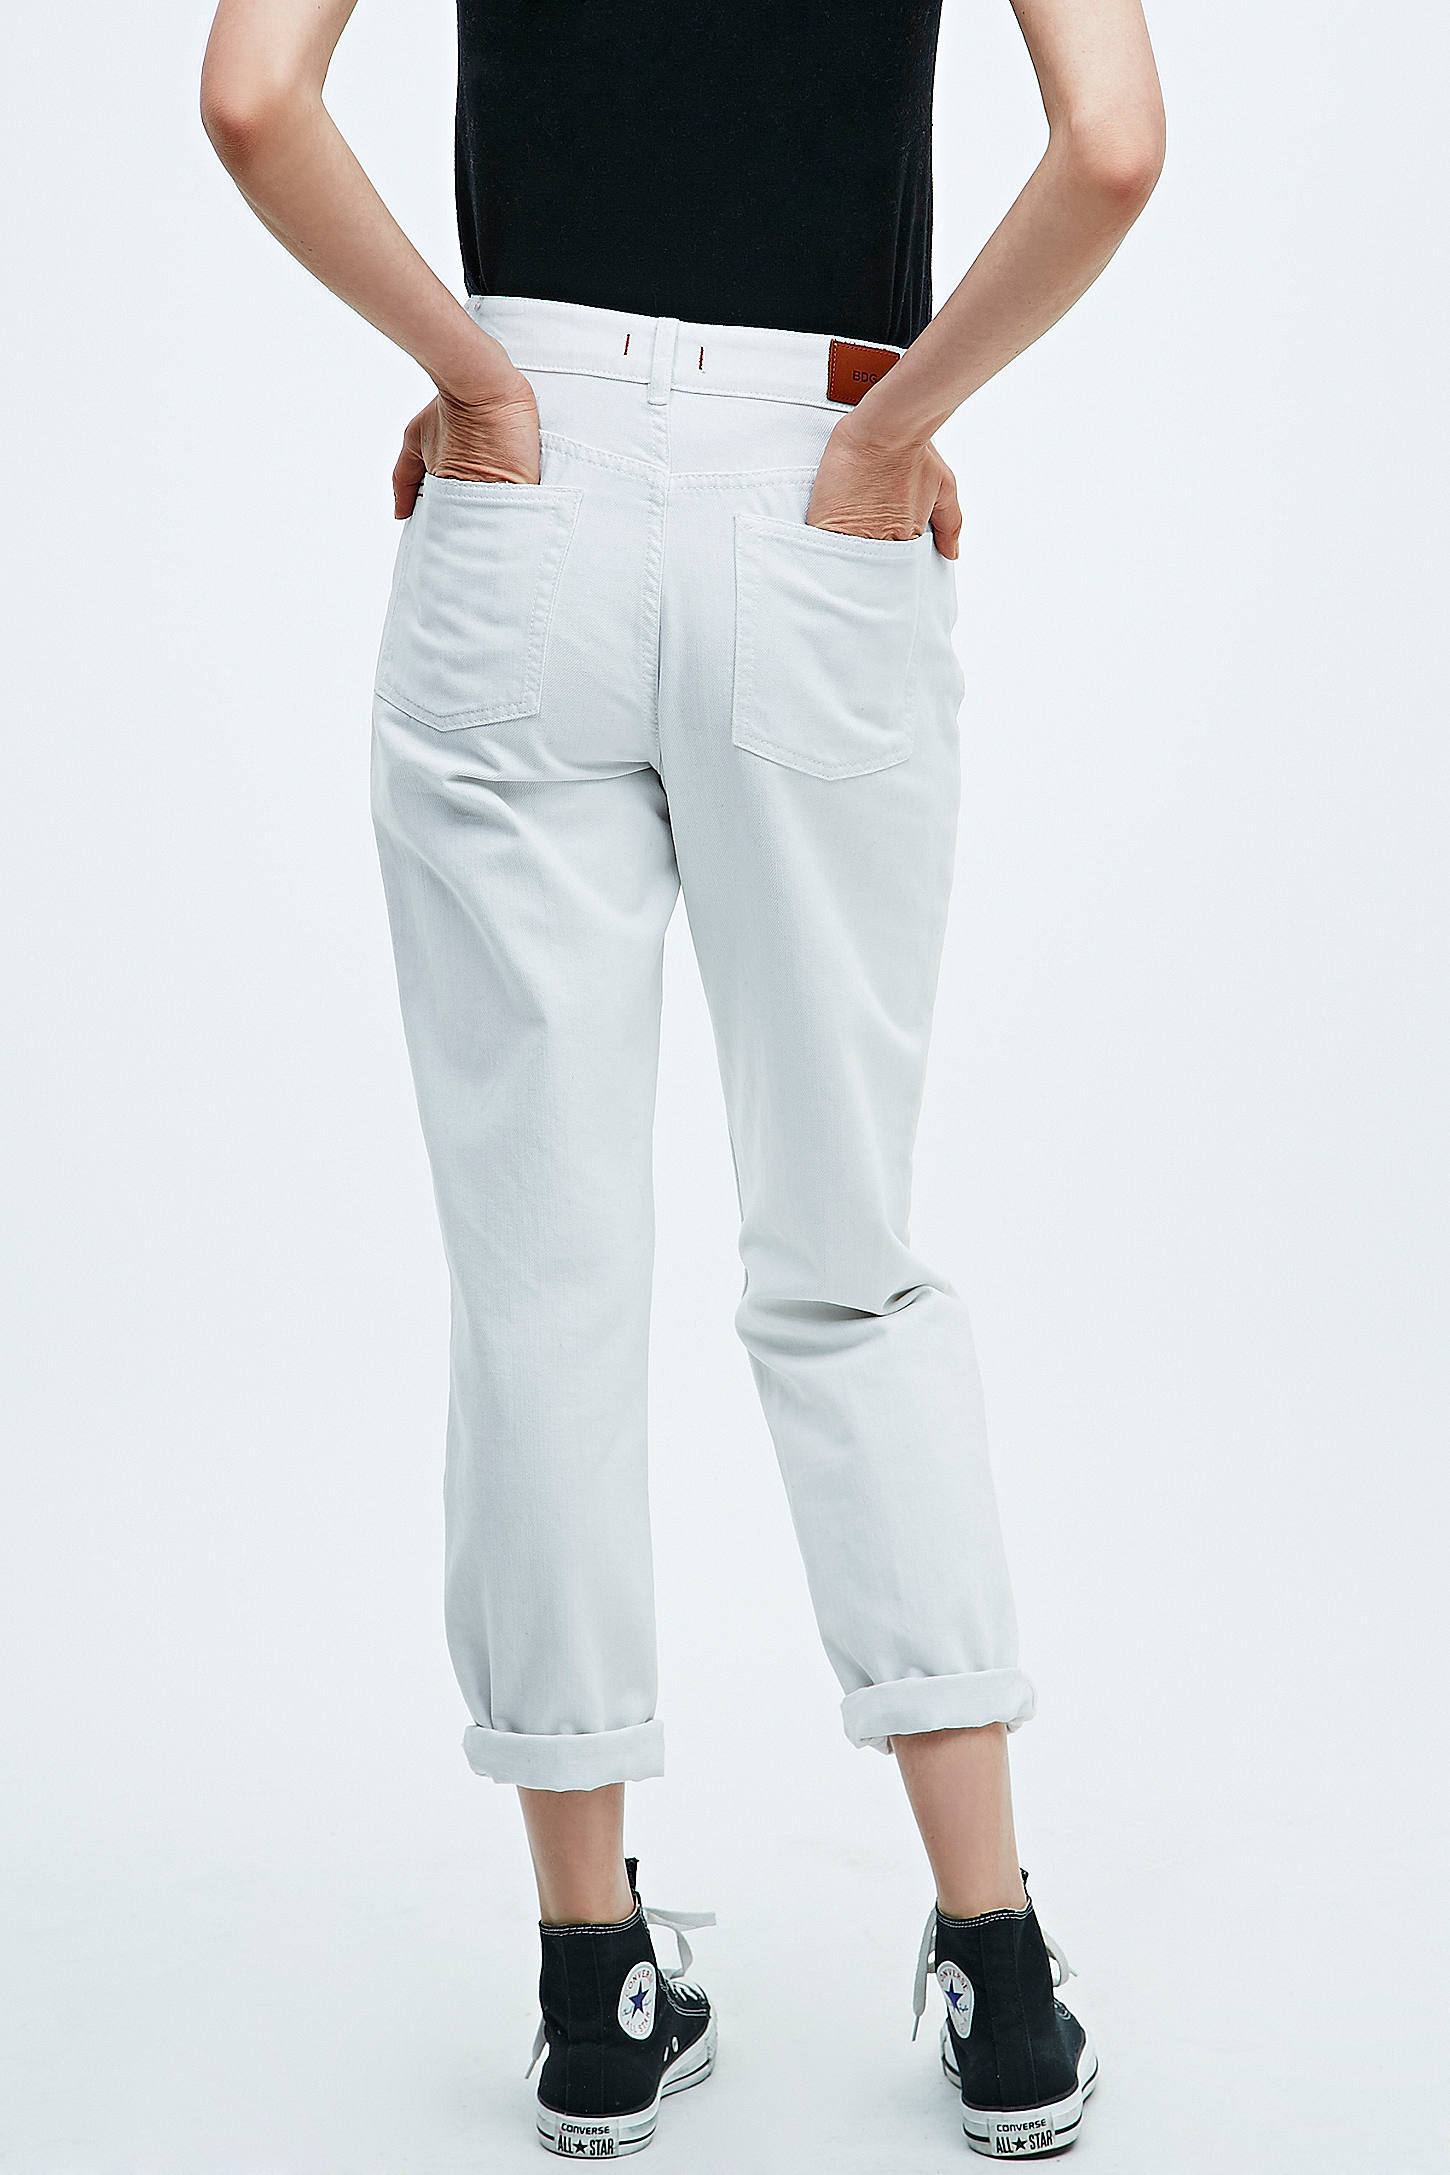 BDG White Mom Jeans | Urban Outfitters